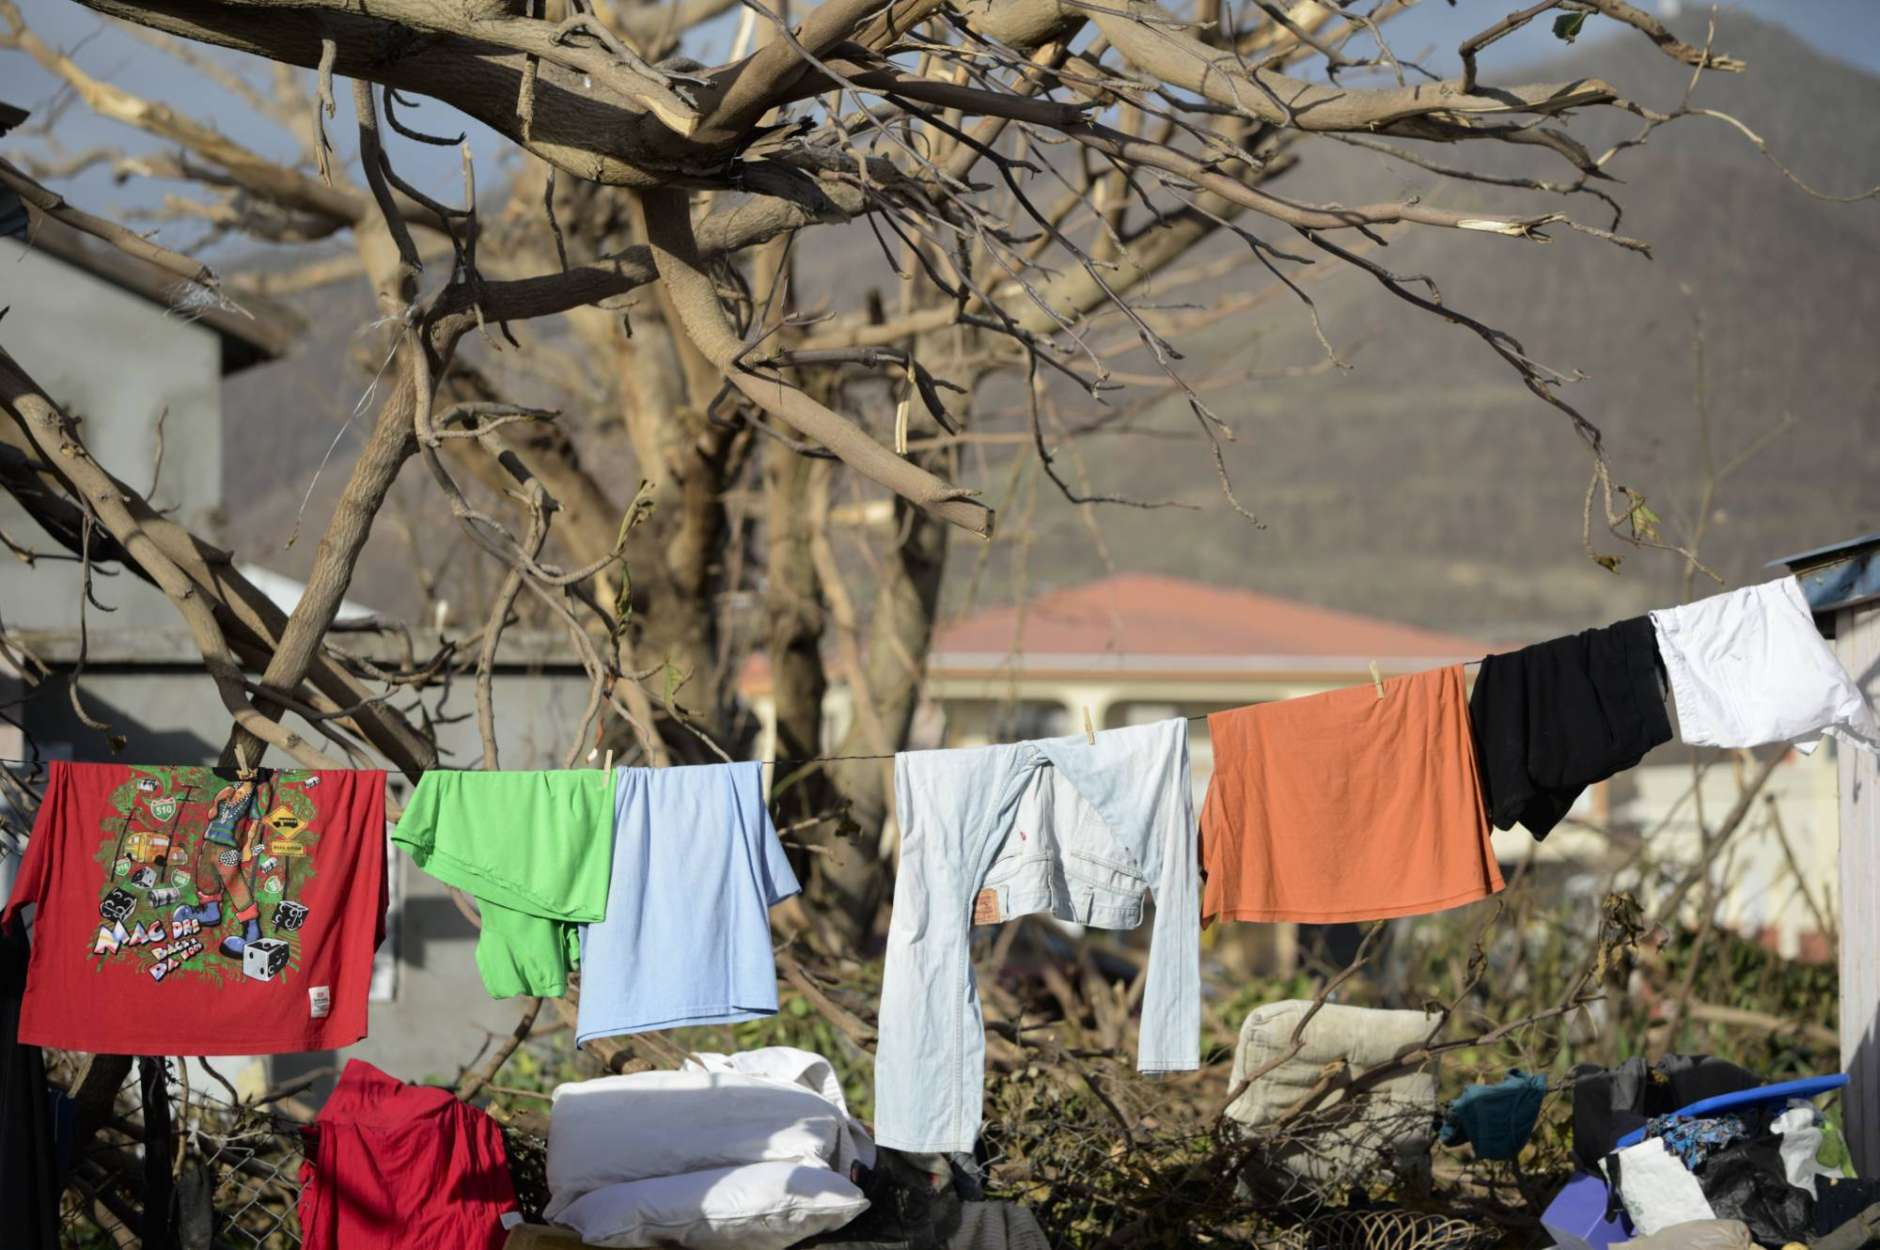 Residents hang clothes to dry after the passage of Hurricane Irma, in Phillipsburg, St. Martin, Monday, September 11, 2017. Irma cut a path of devastation across the northern Caribbean, leaving thousands homeless after destroying buildings and uprooting trees.  (AP Photo/Carlos Giusti)